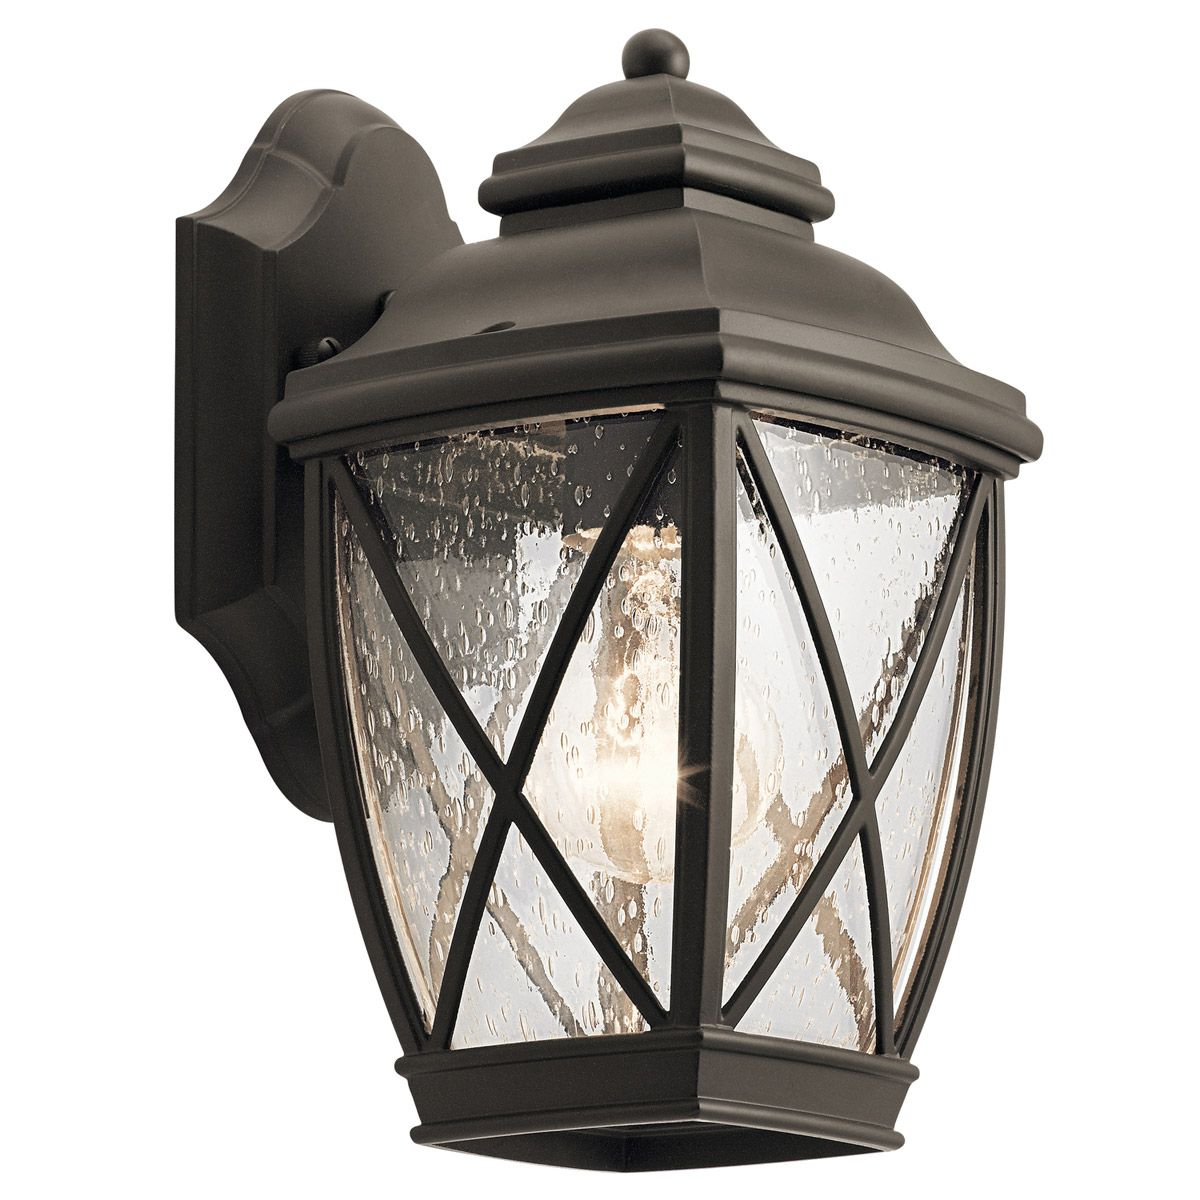 """Kichler Tangier 10.25"""" Outdoor Wall Sconce in Olde Bronze on Kichler Olde Bronze Wall Sconce id=14742"""